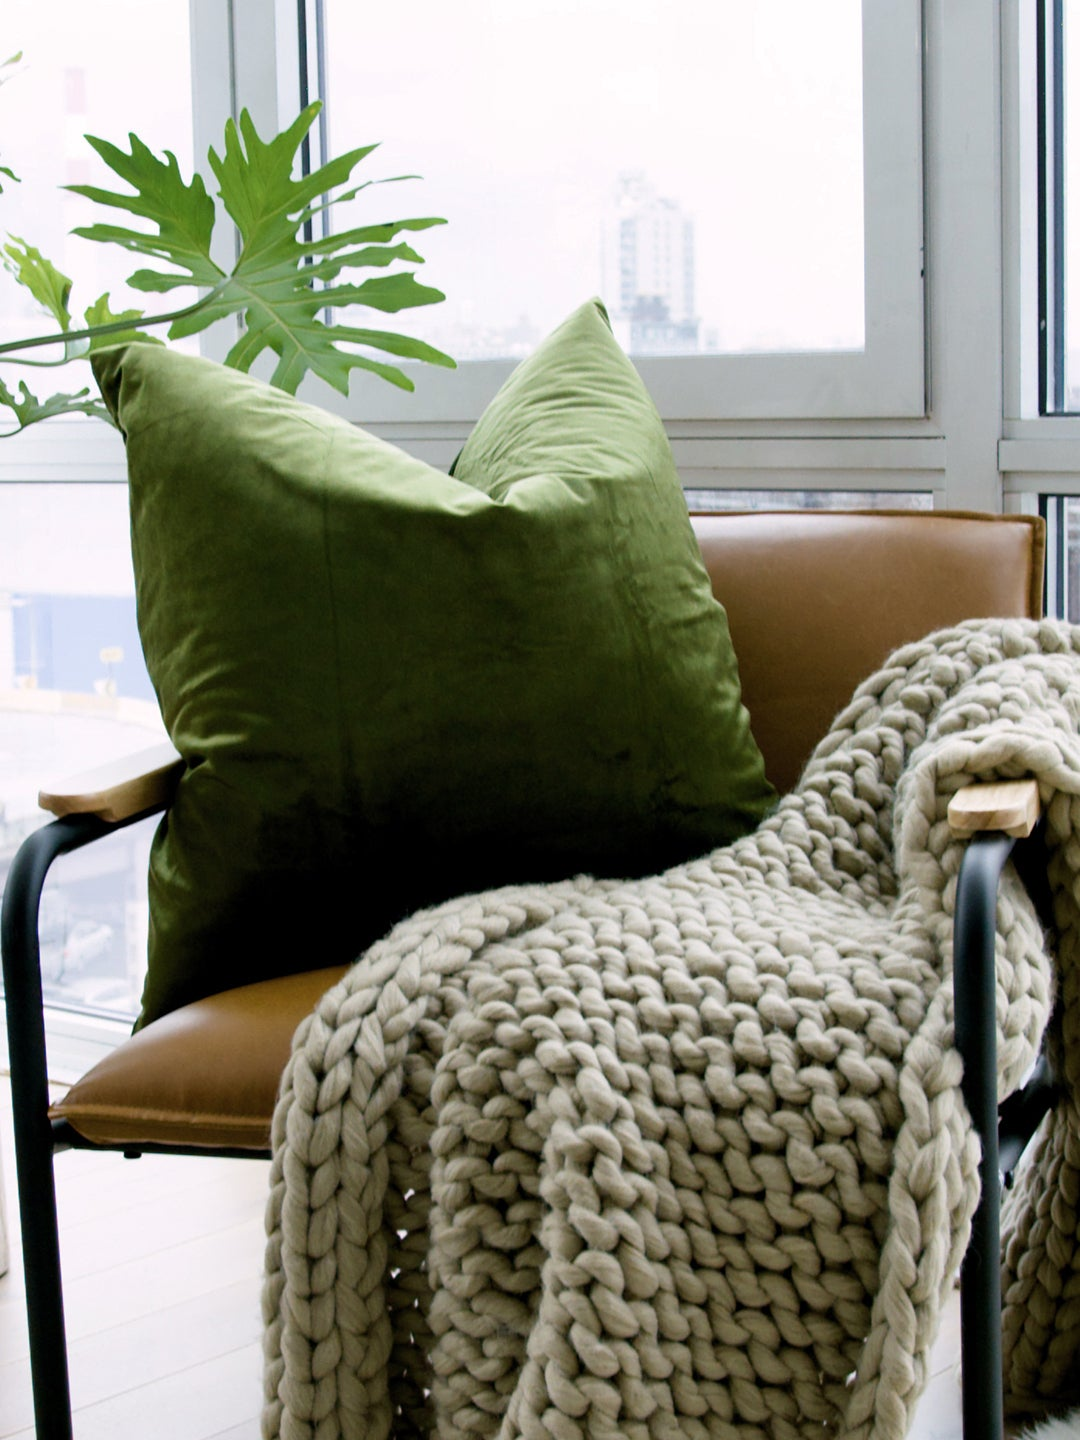 3 Swaps to Make Your Home Cozier This Fall